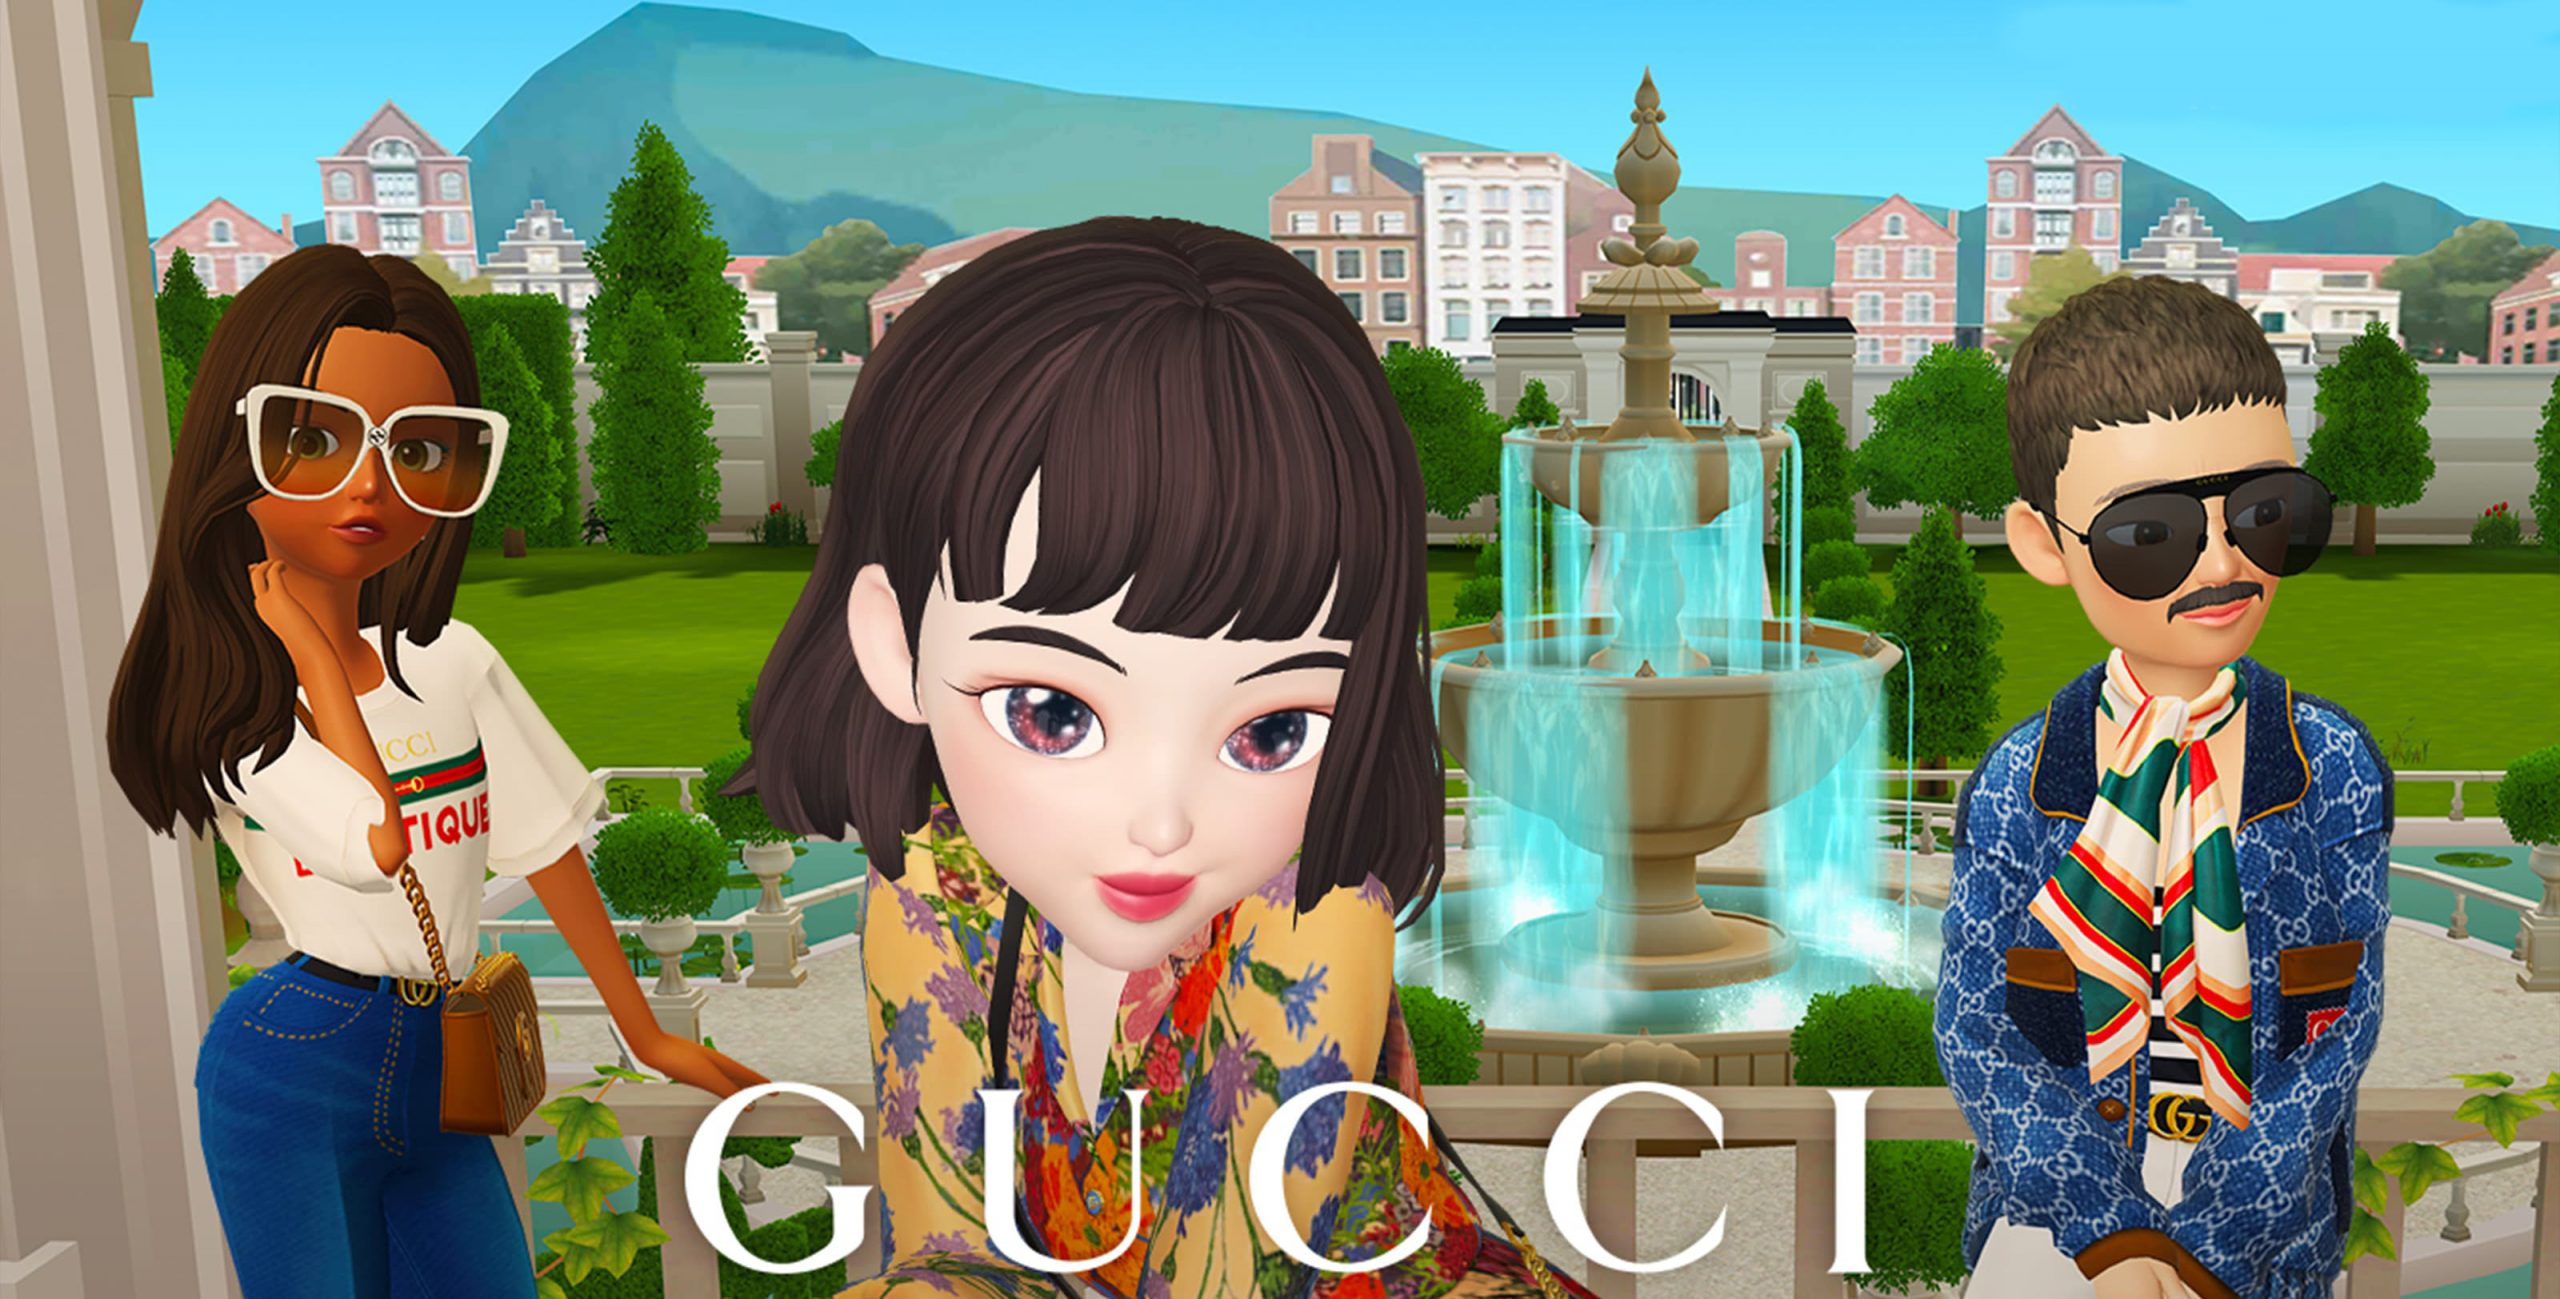 Gucci Partners With Zepeto App